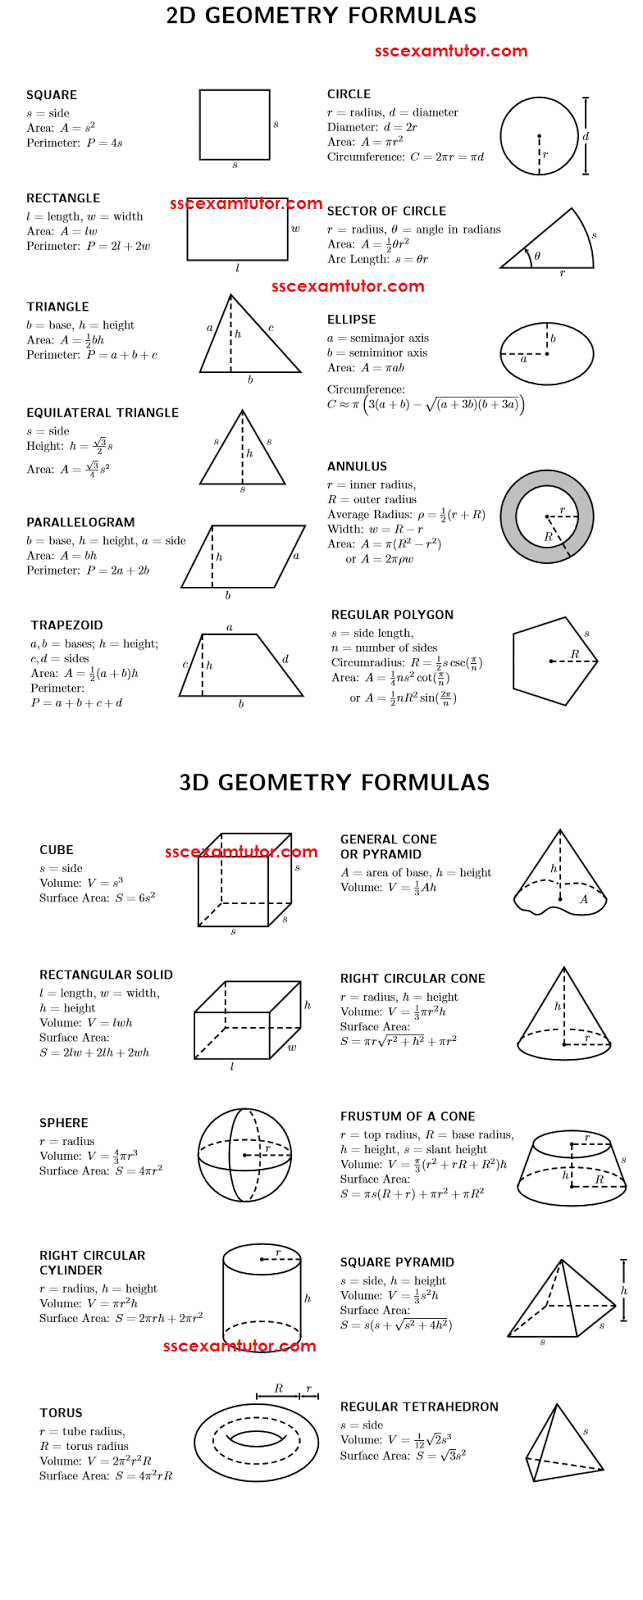 Geometry Formulas for SSC CGL